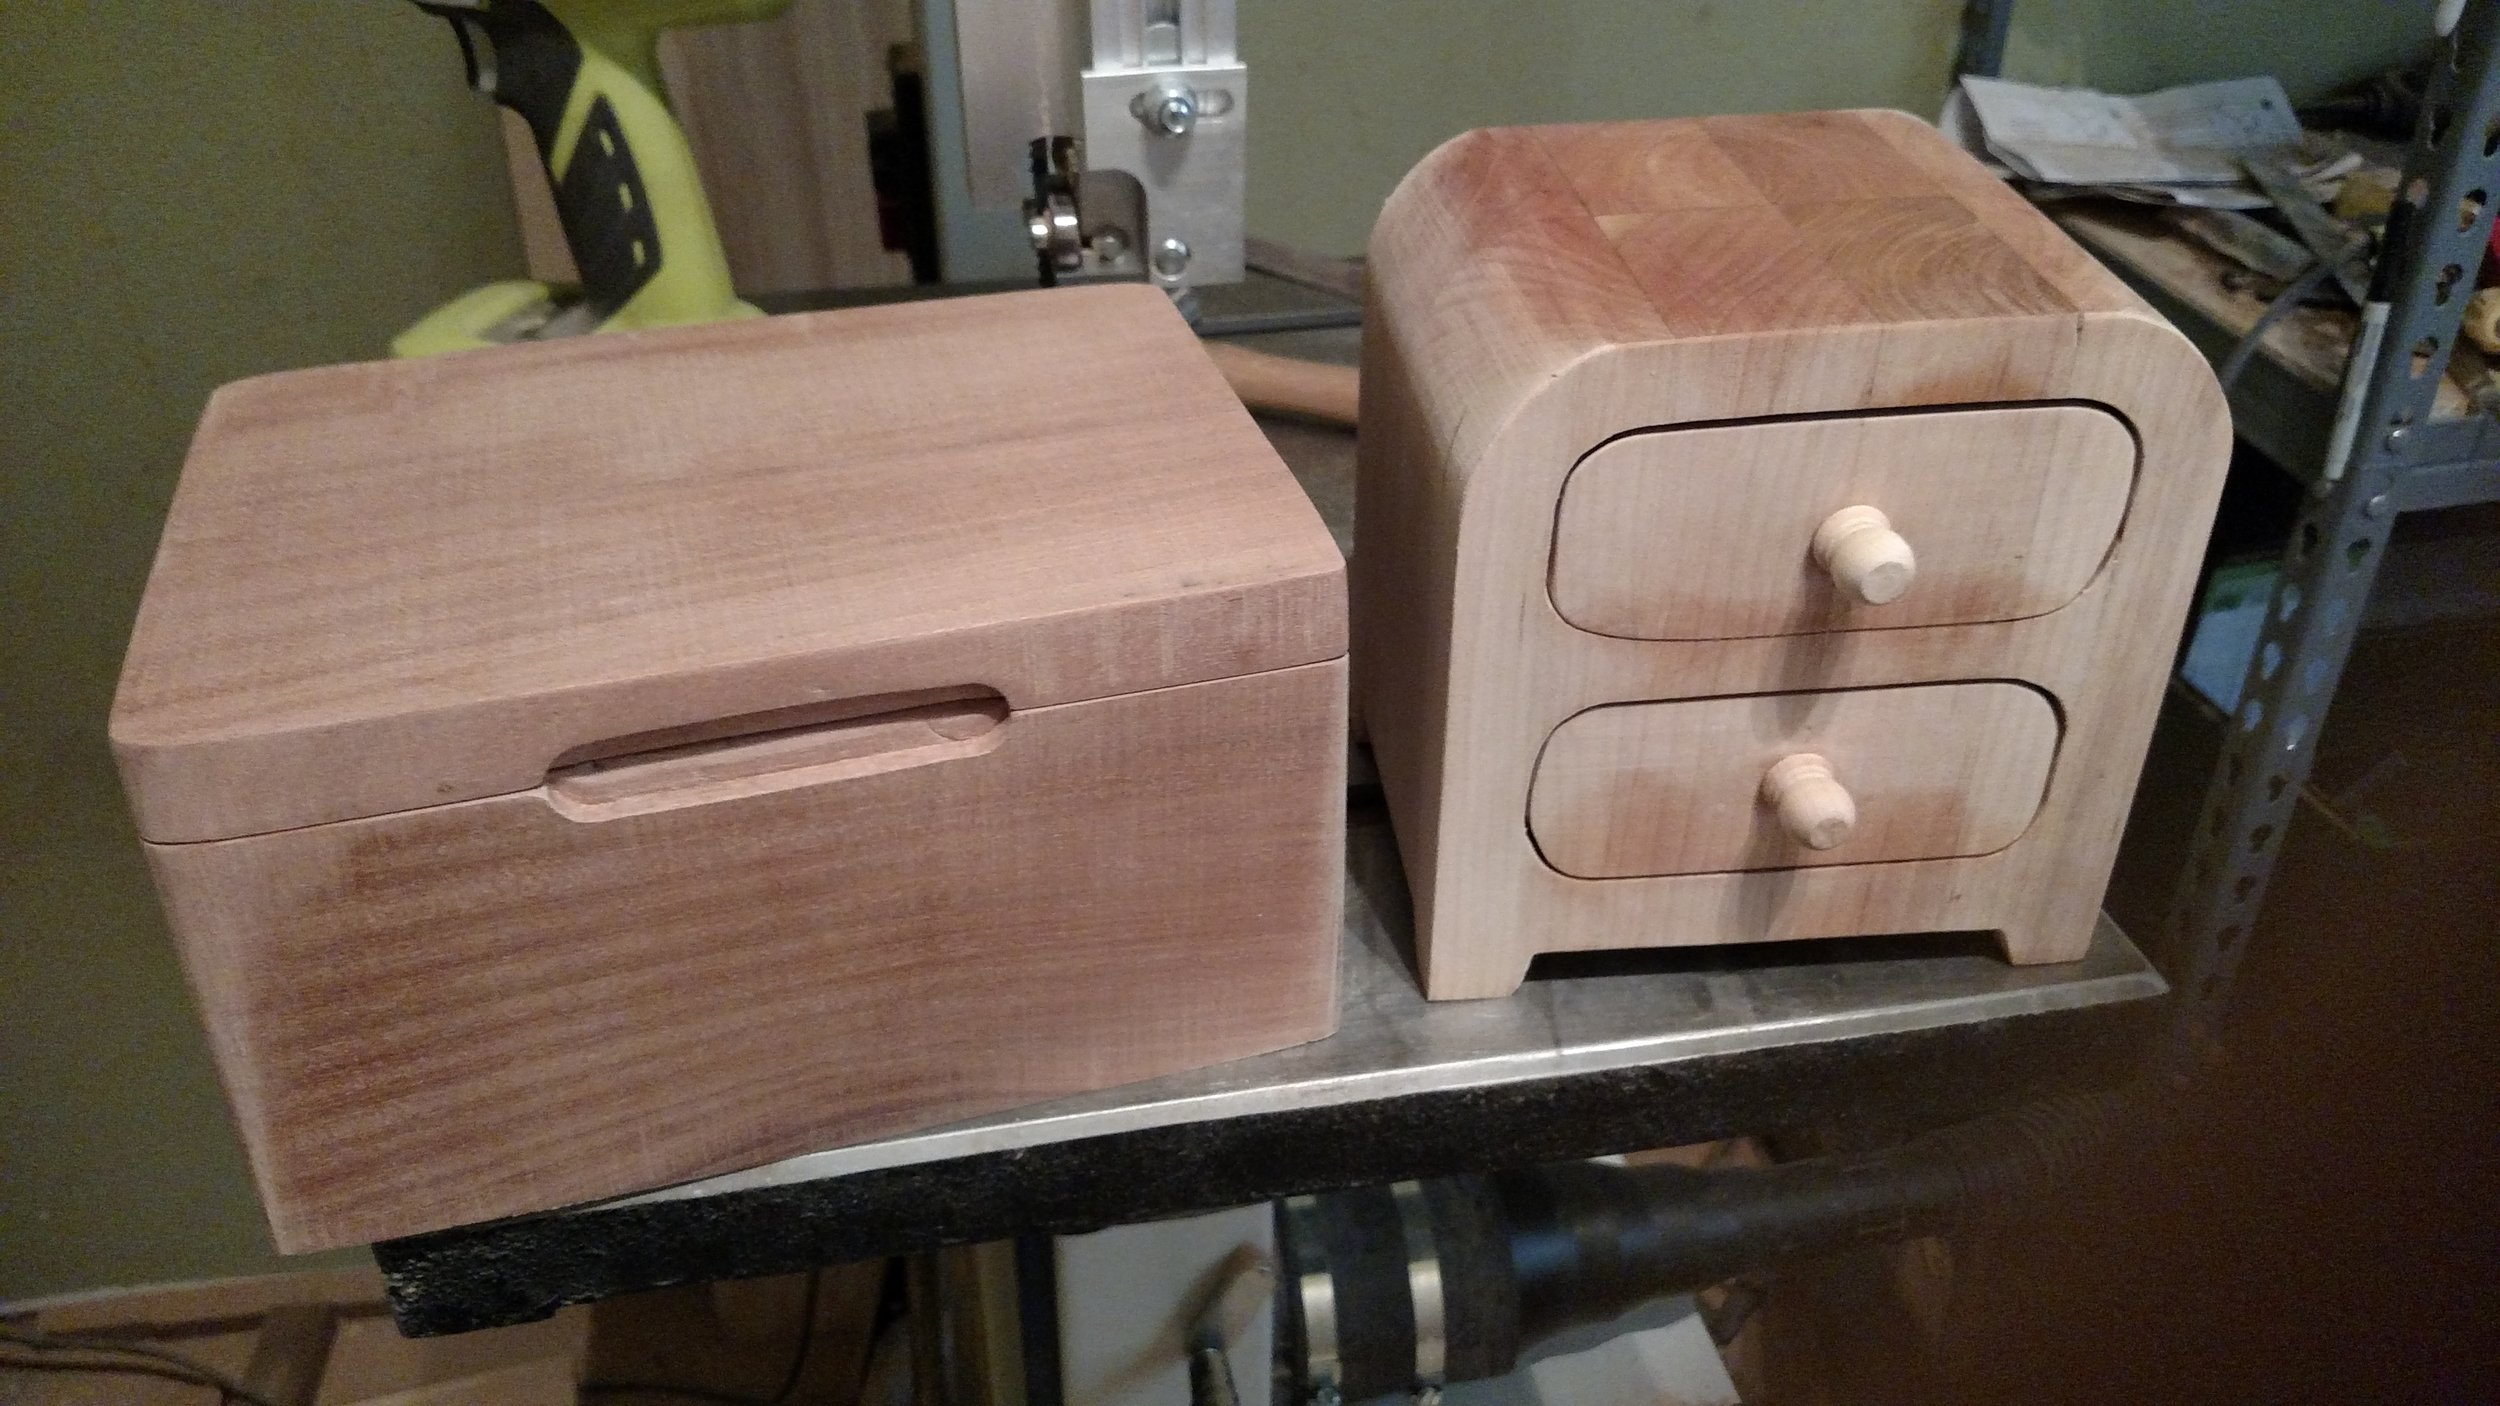 A keepsake box I made for my mom and a jewelry box I made for my sister Carla.